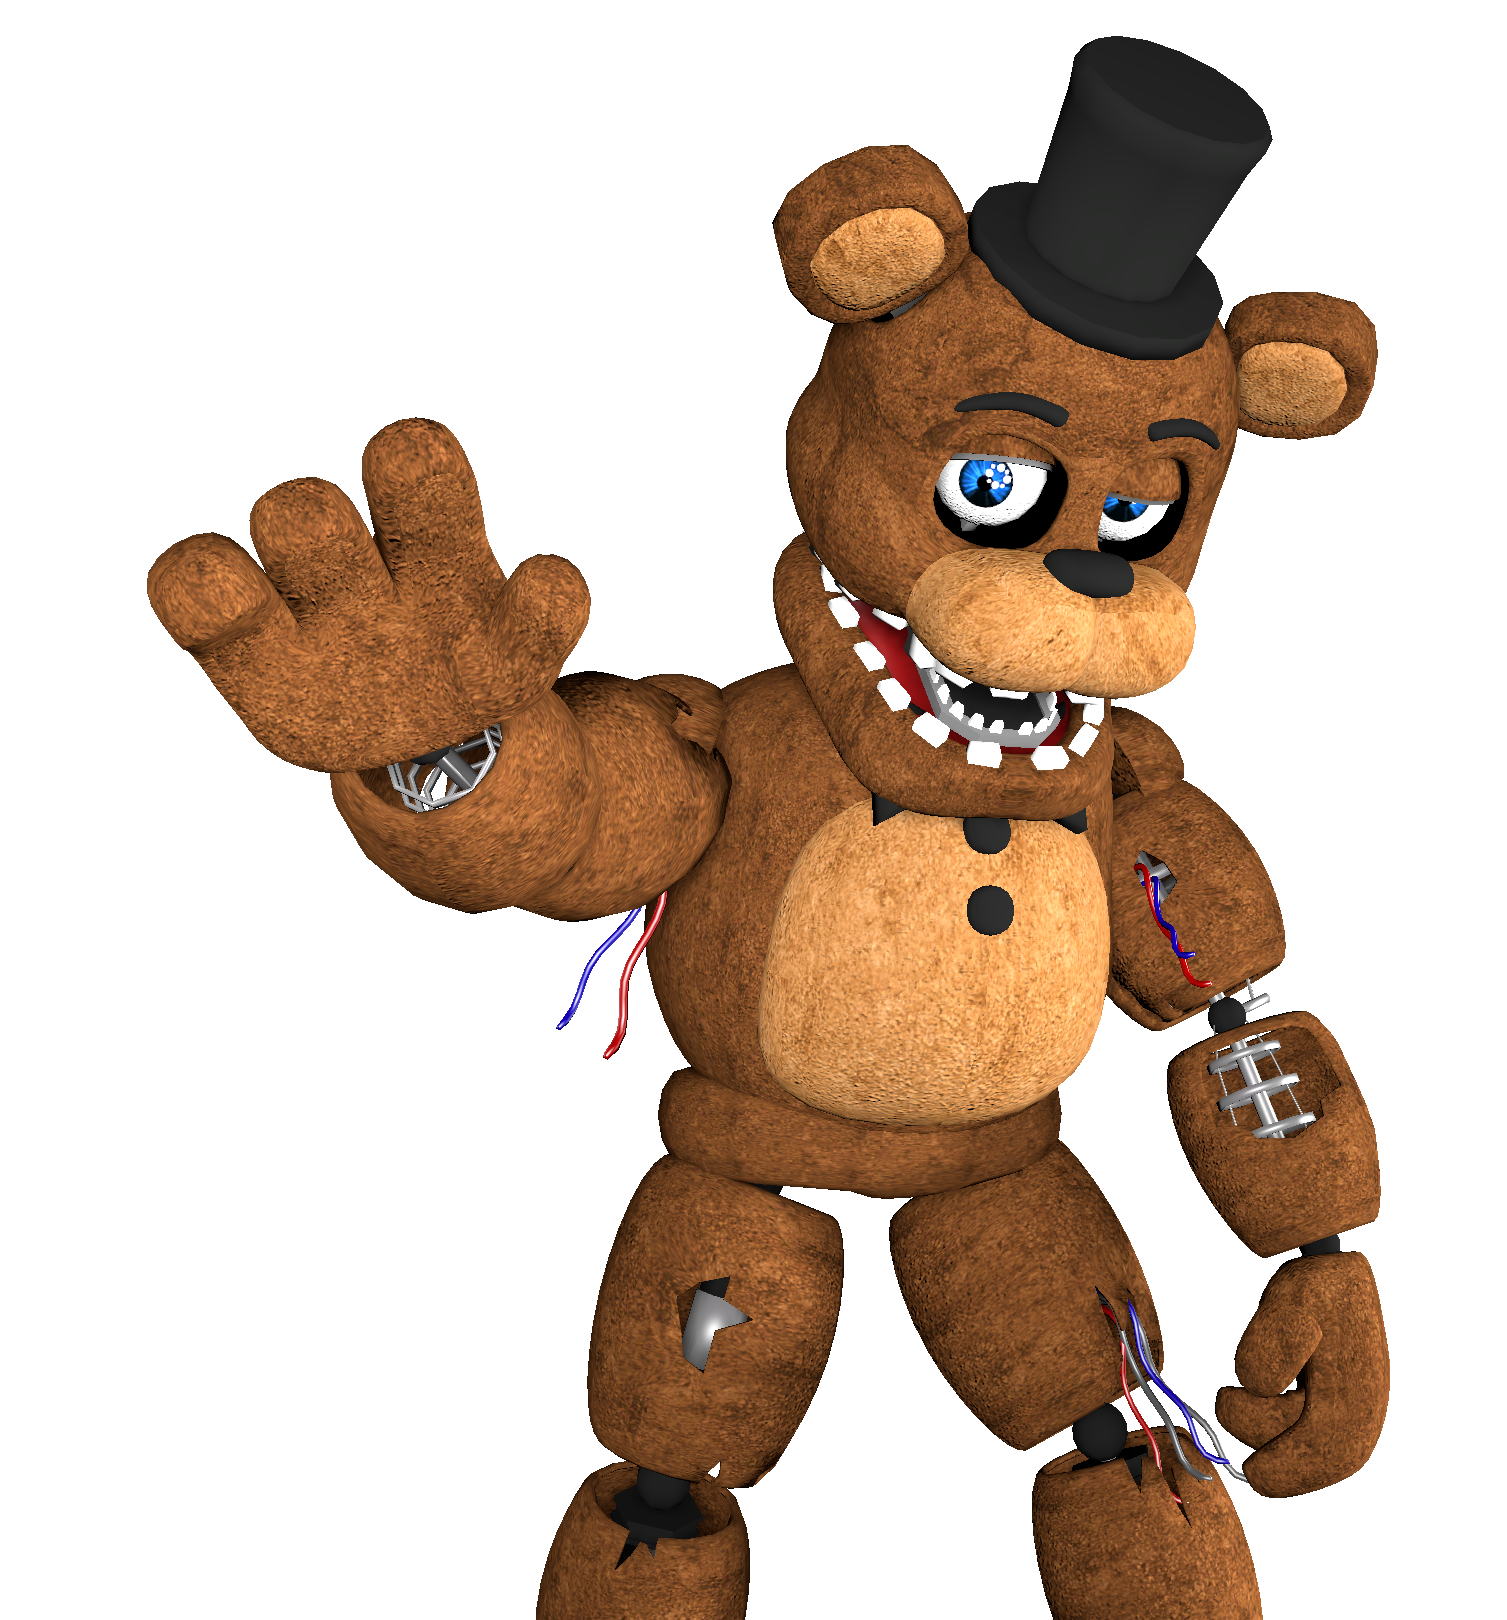 Withered Freddy   Five Nights With 39 Wiki   FANDOM powered by Wikia